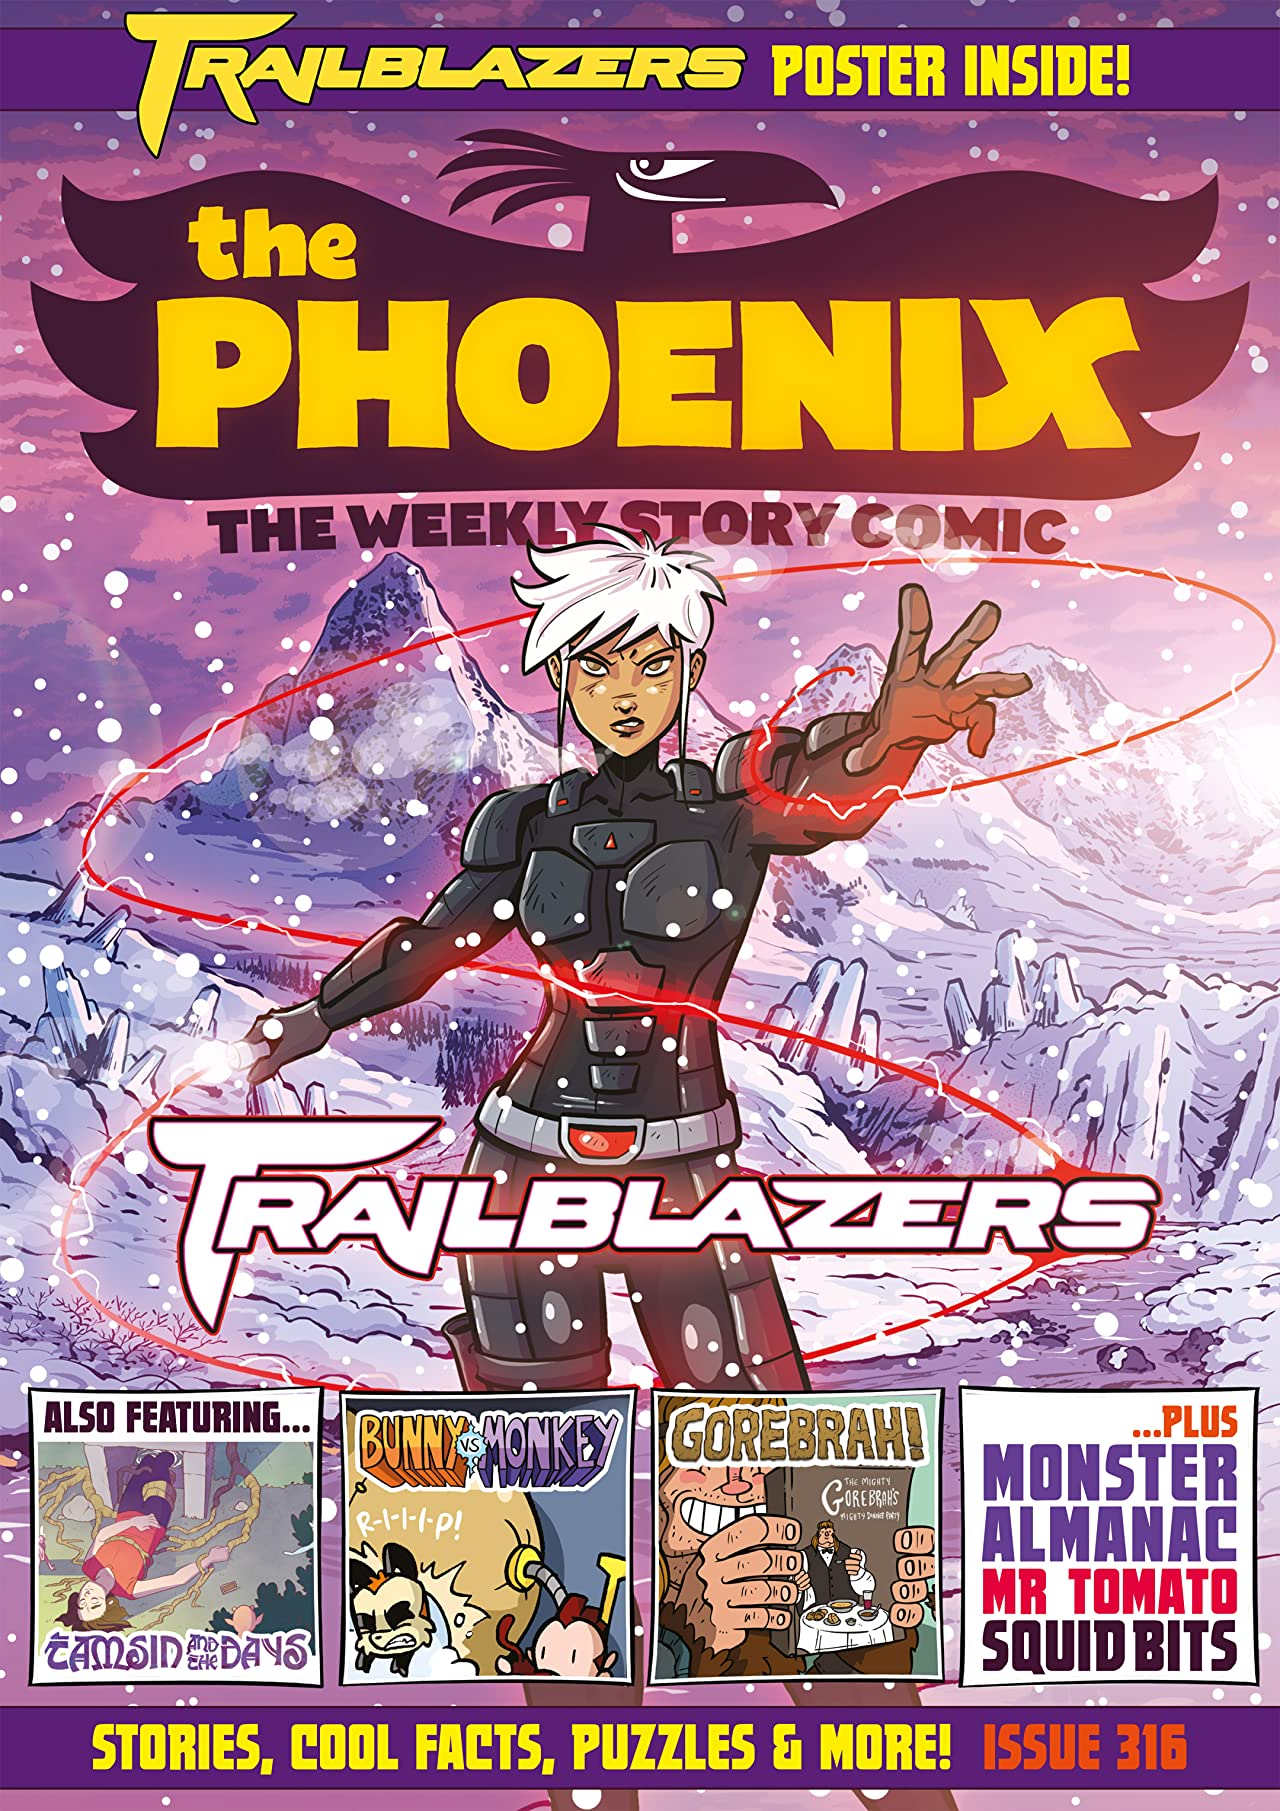 The Phoenix #316: The Weekly Story Comic